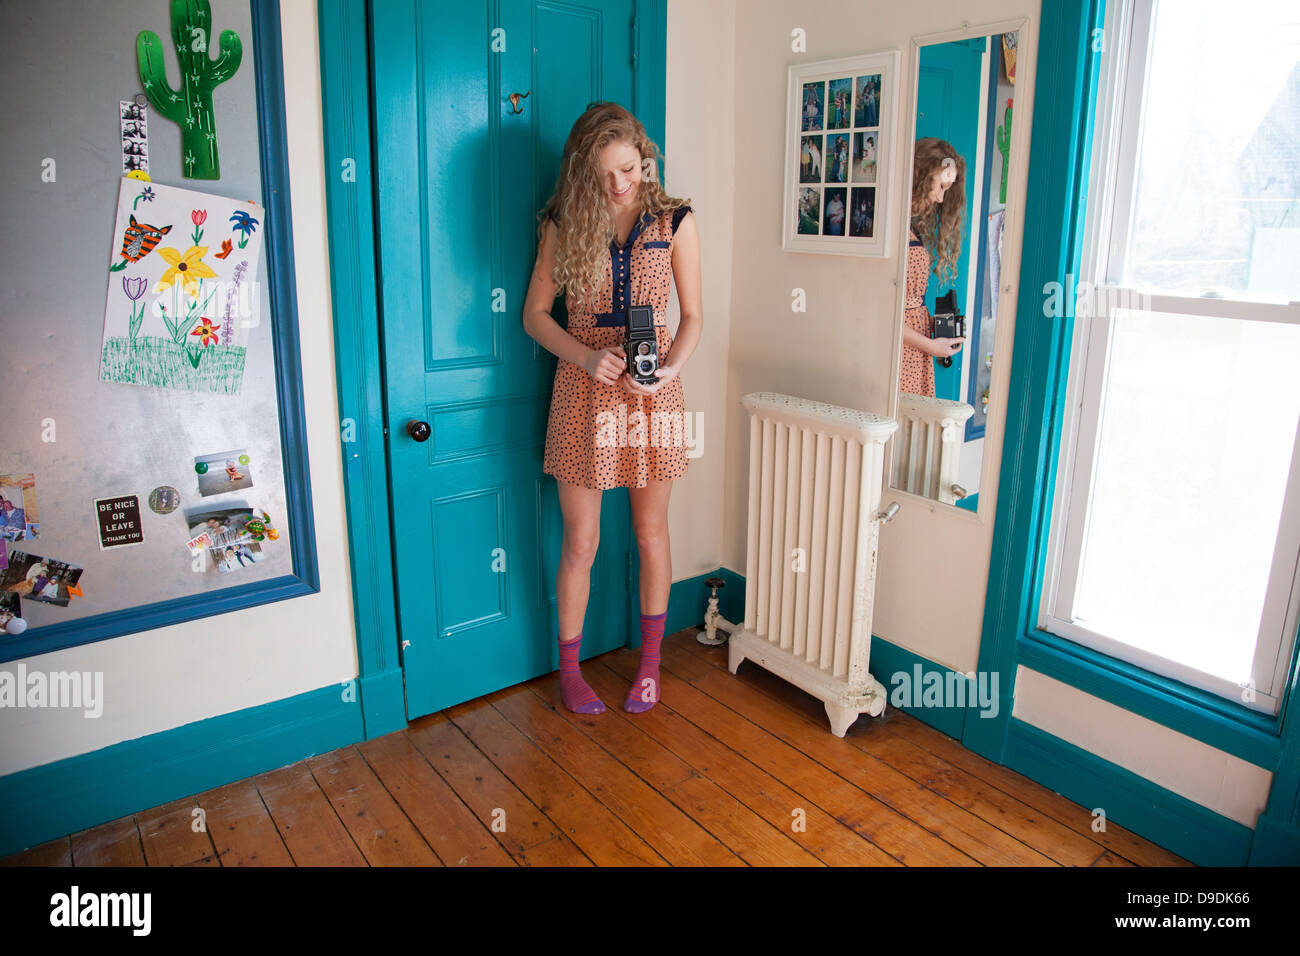 Teenager standing in bedroom with antique camera - Stock Image